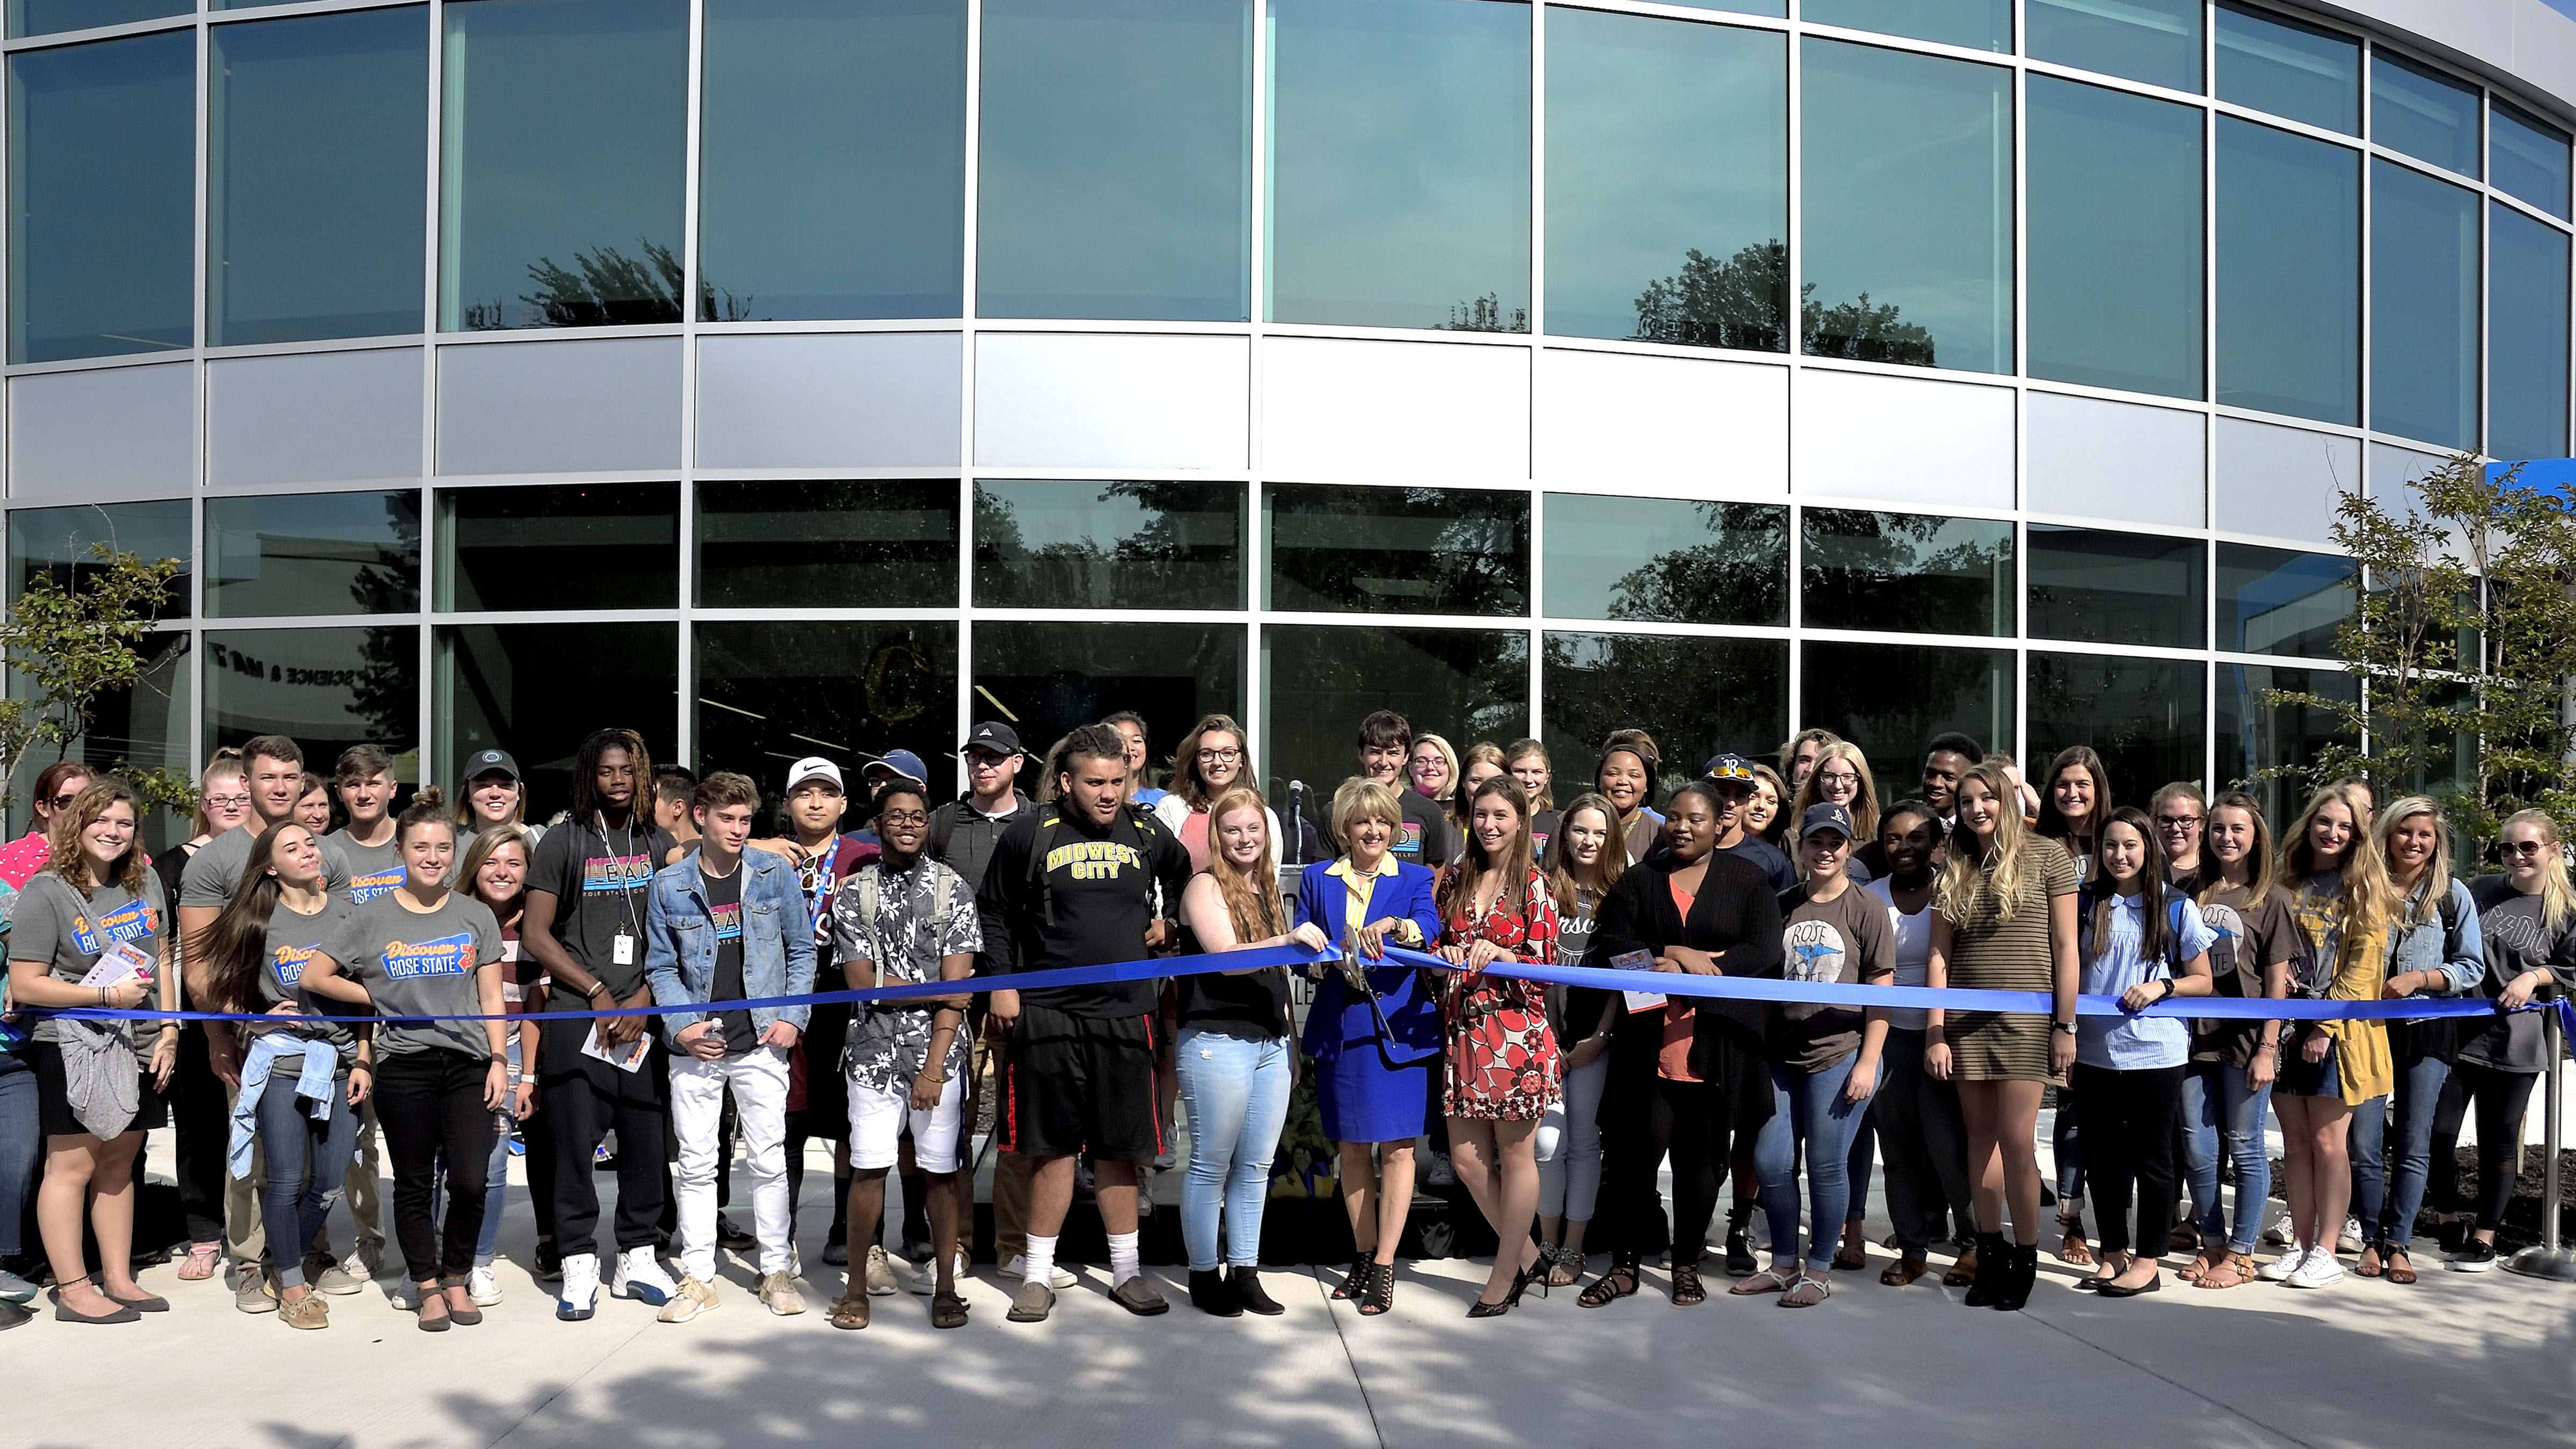 Rose State College President Jeanie Webb cuts the ribbon on the new Learning Resource Center with hundreds of students surrounding her.